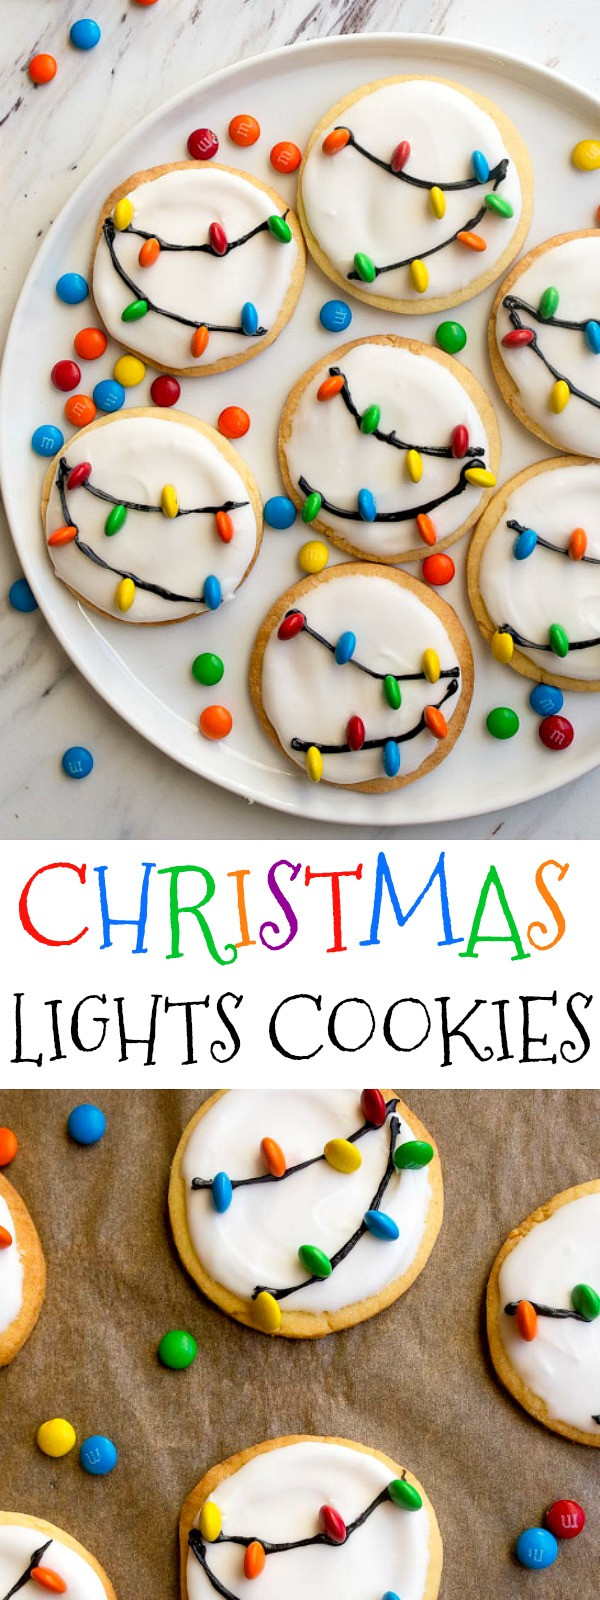 Christmas Light Cookies  Christmas Lights Cookies with Royal Icing